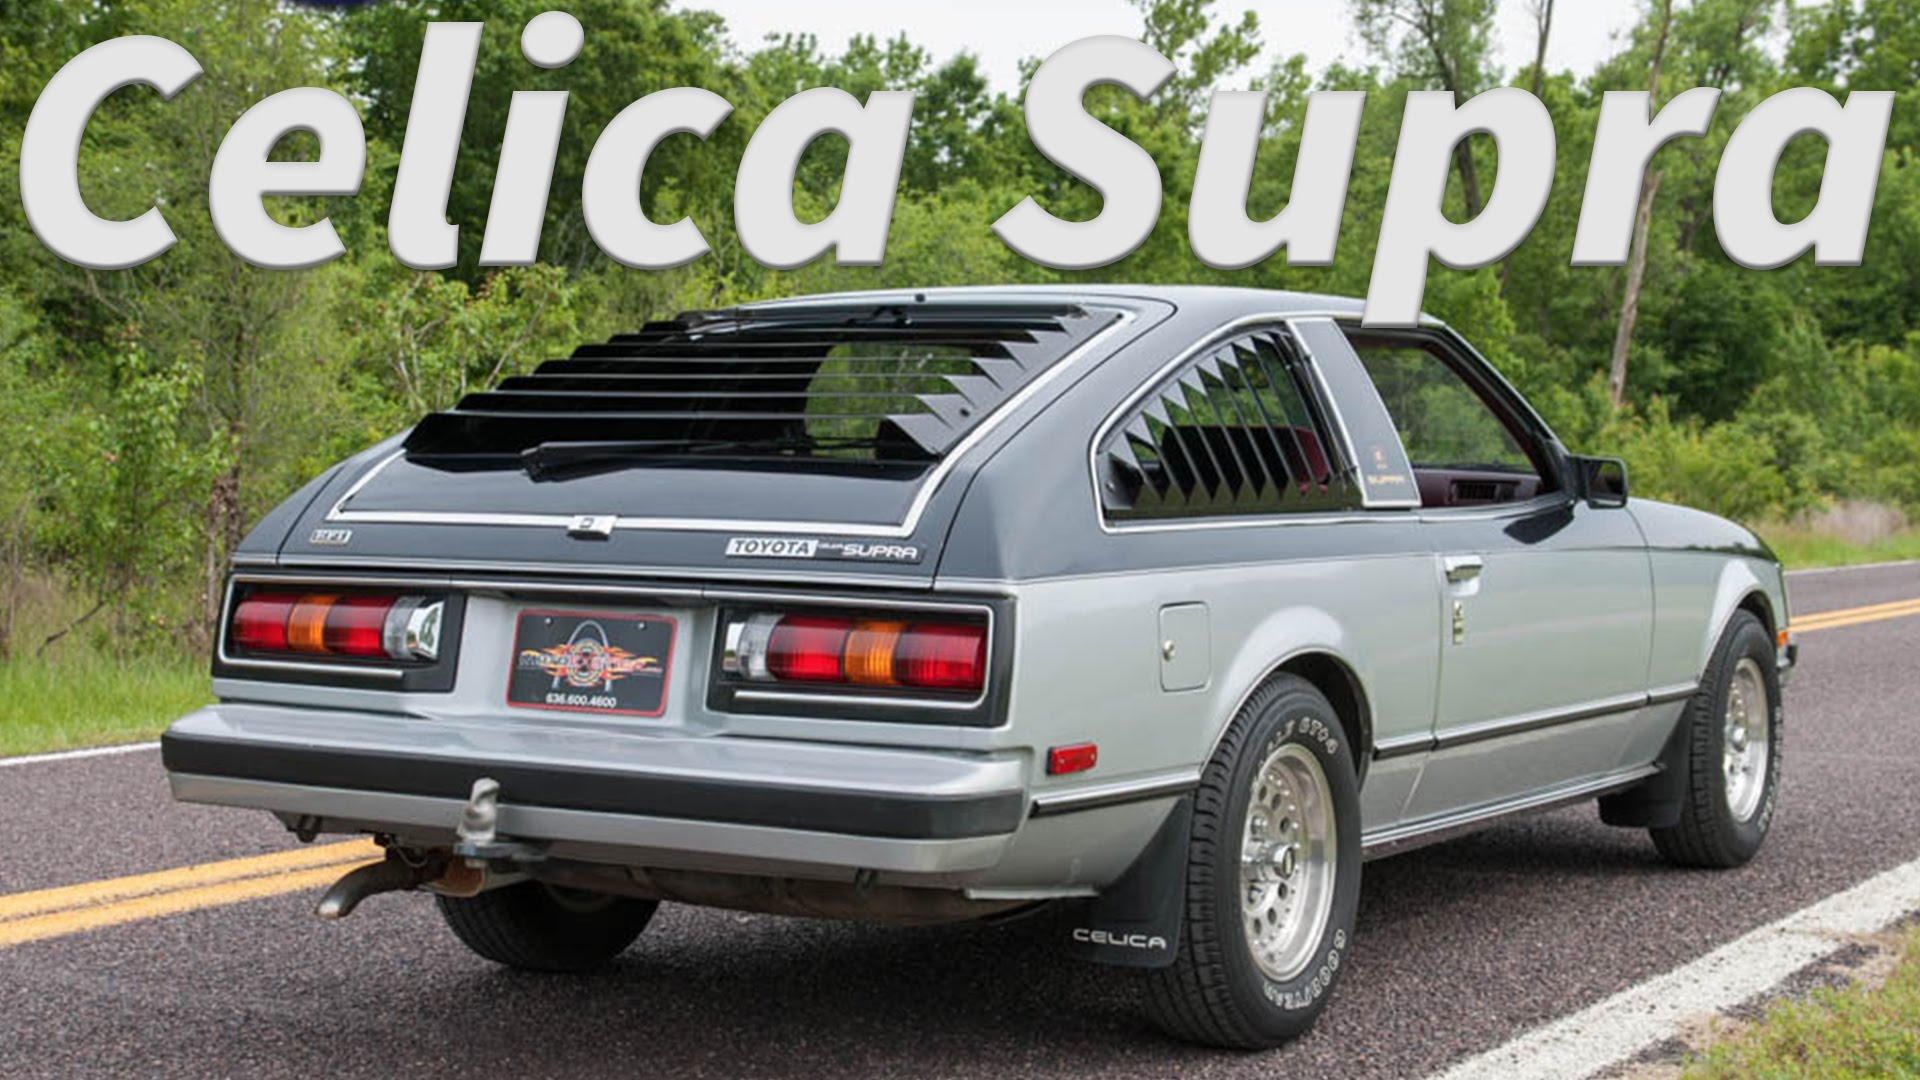 Toyota Celica Supra 1978 1981 Tcsts Webseite